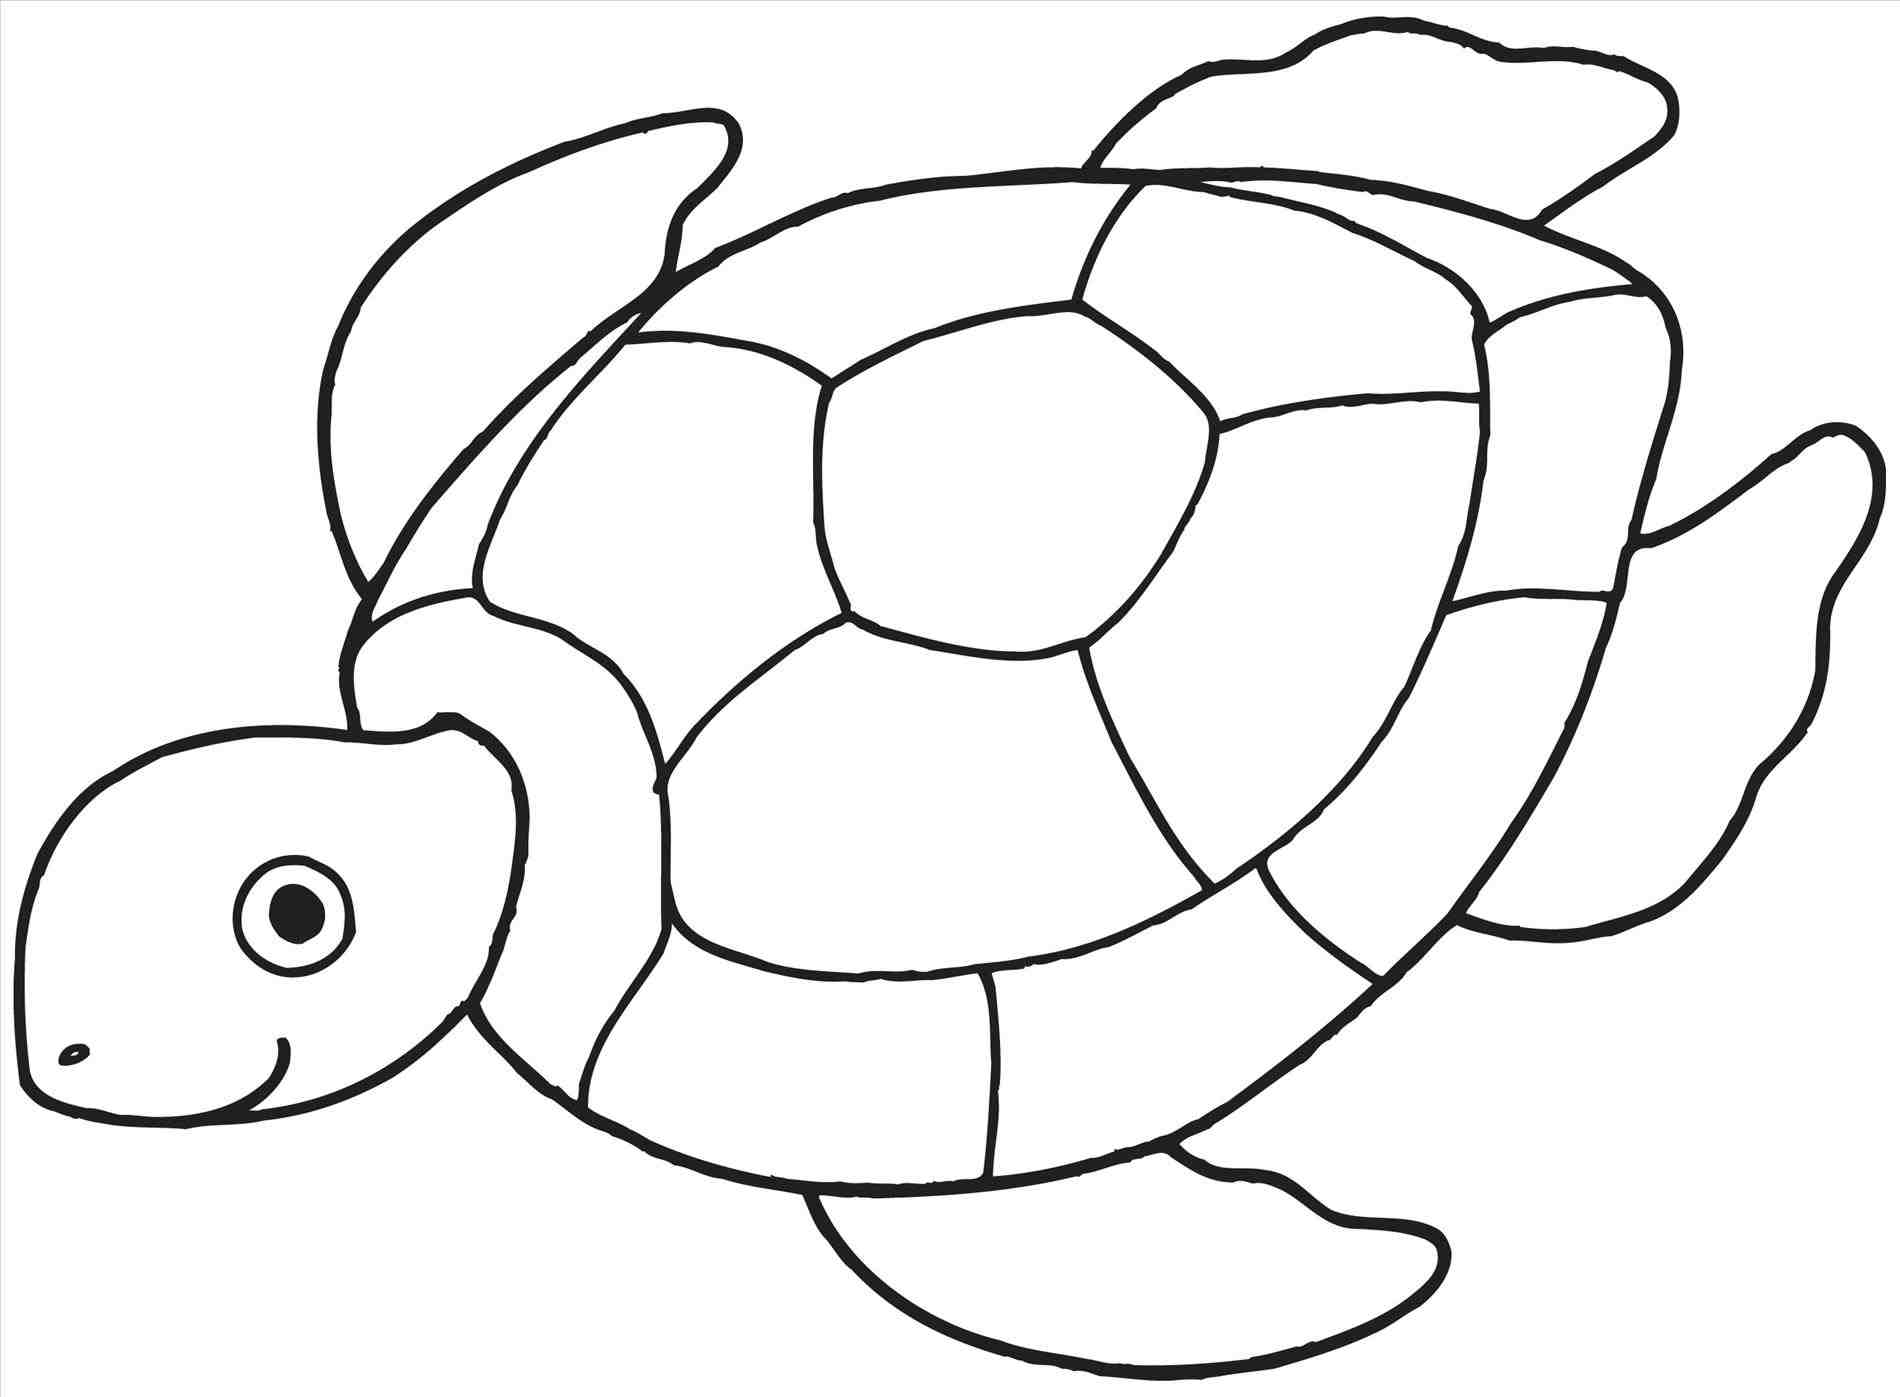 1900x1397 The Images Collection Of Sea Easy Drawings Turtle Drawing Simple